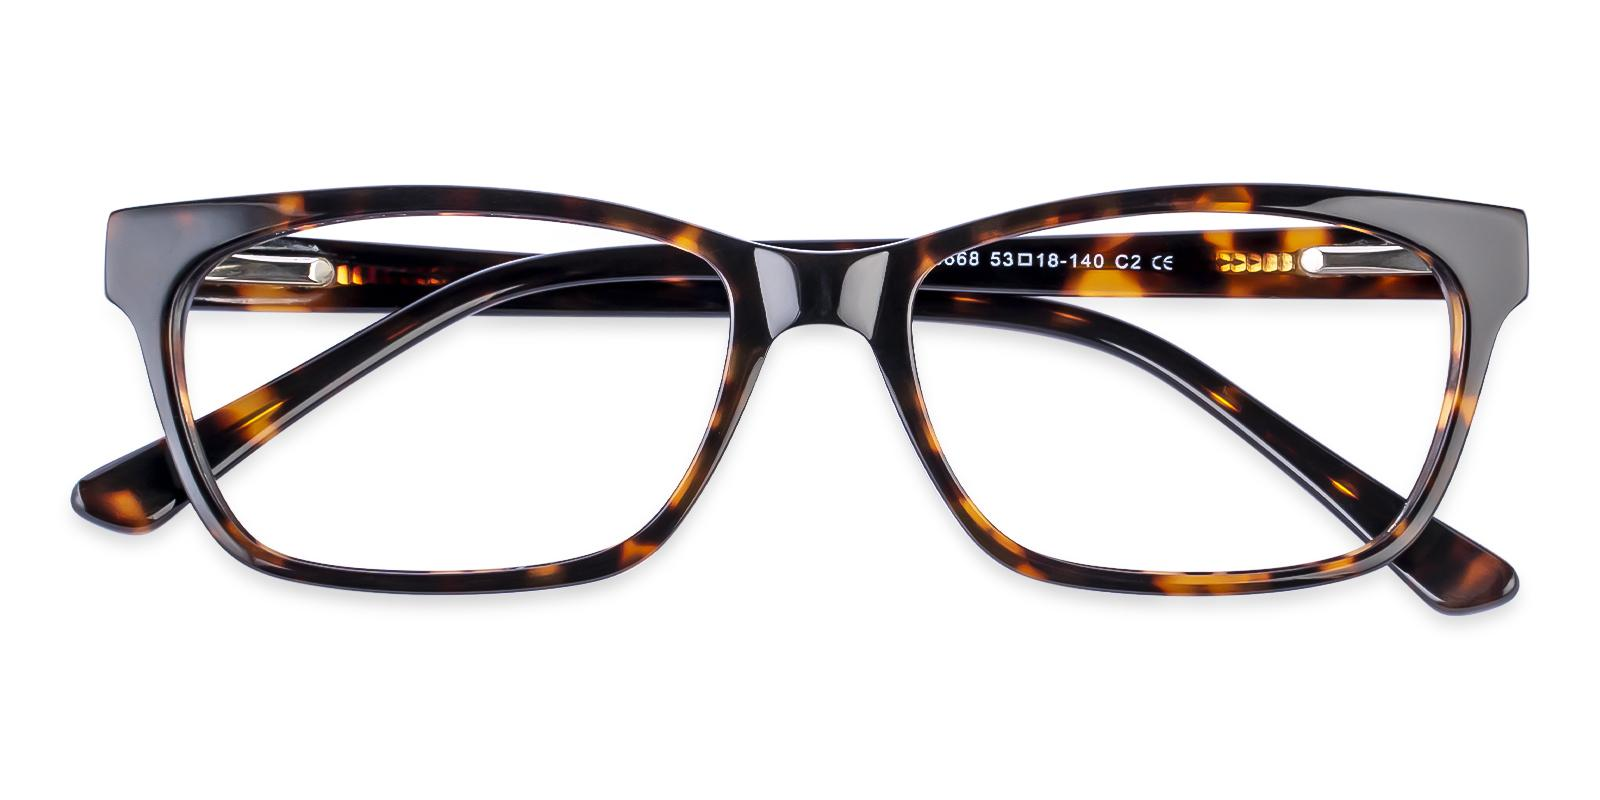 Demain Tortoise Acetate Eyeglasses , SpringHinges , UniversalBridgeFit Frames from ABBE Glasses